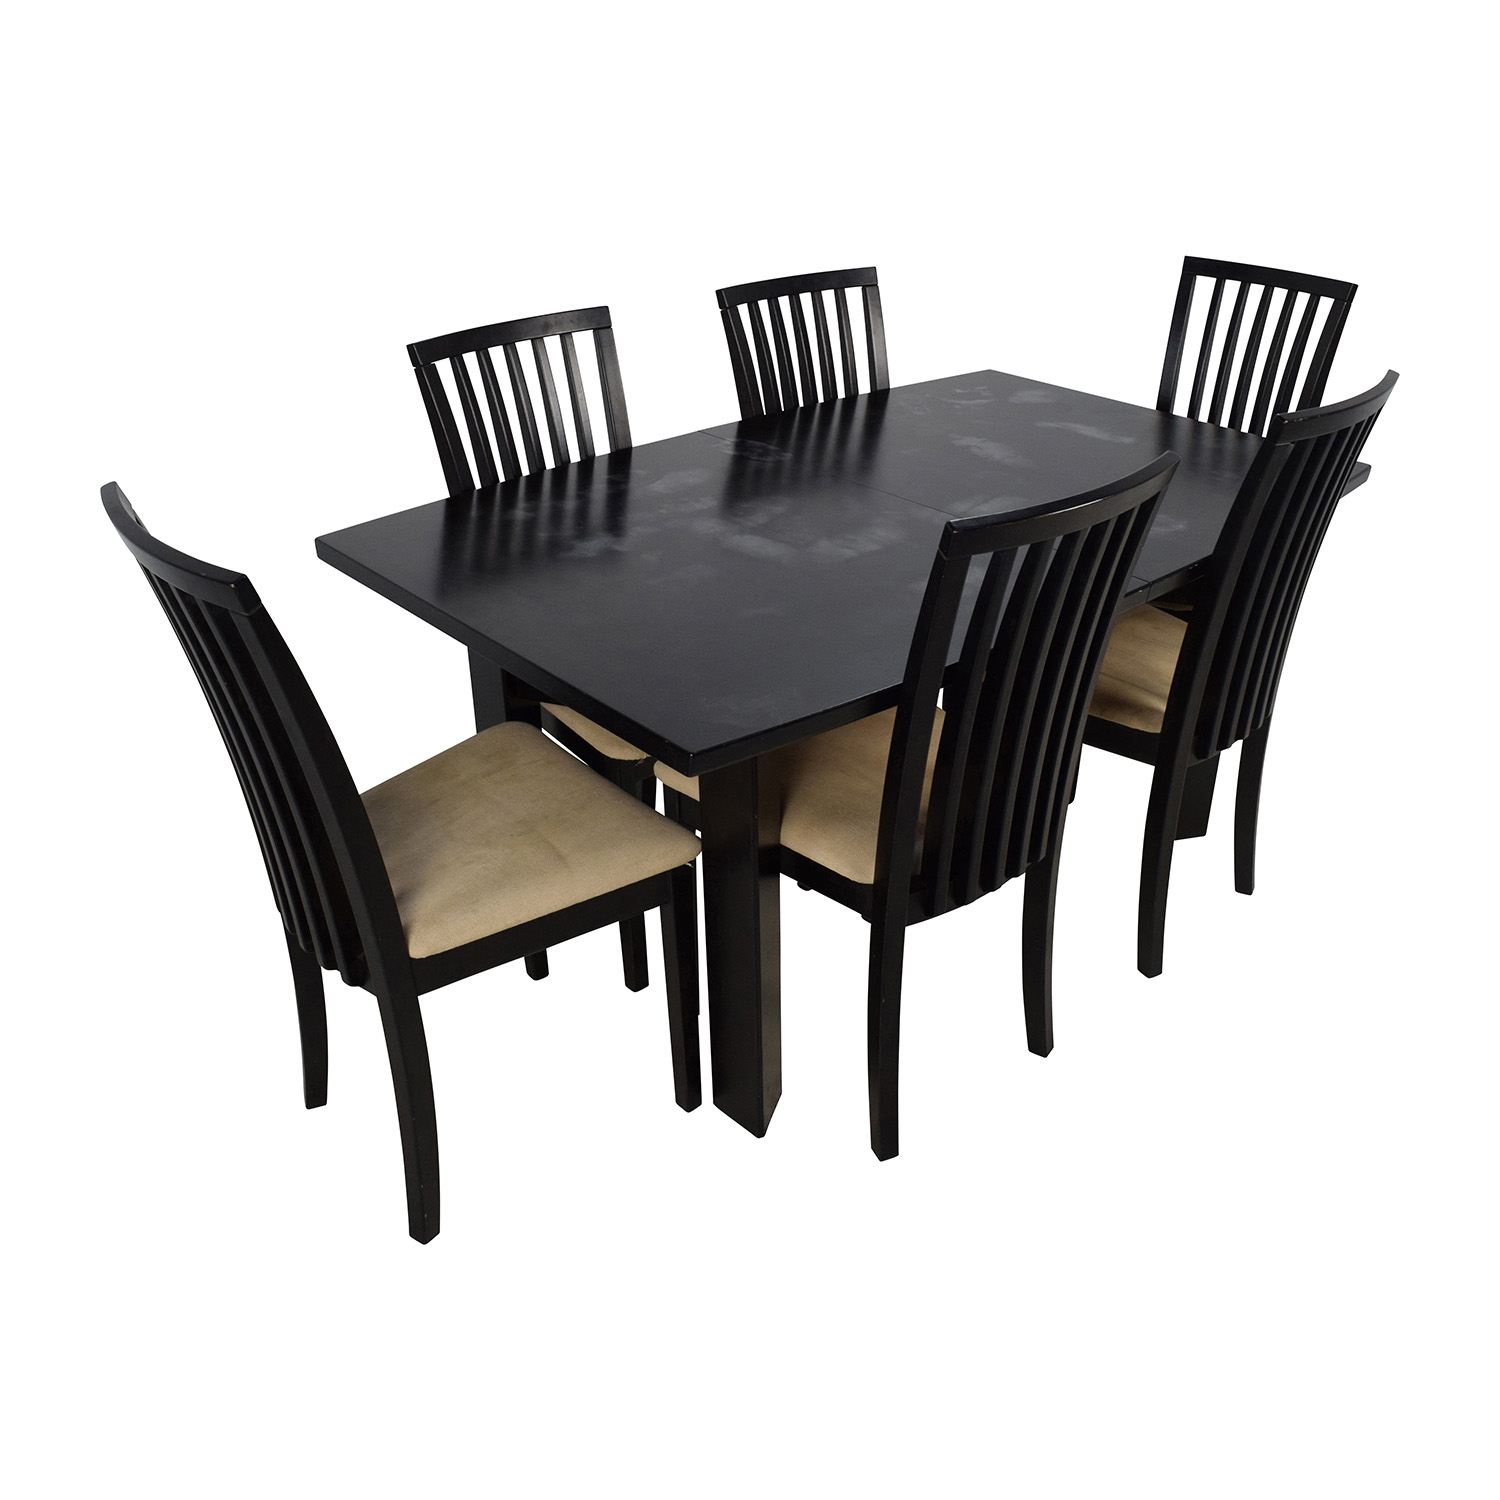 buy Skovby SM 24 Dining Table with Butterfly Extensions and Six Chairs Skovby Dining Sets